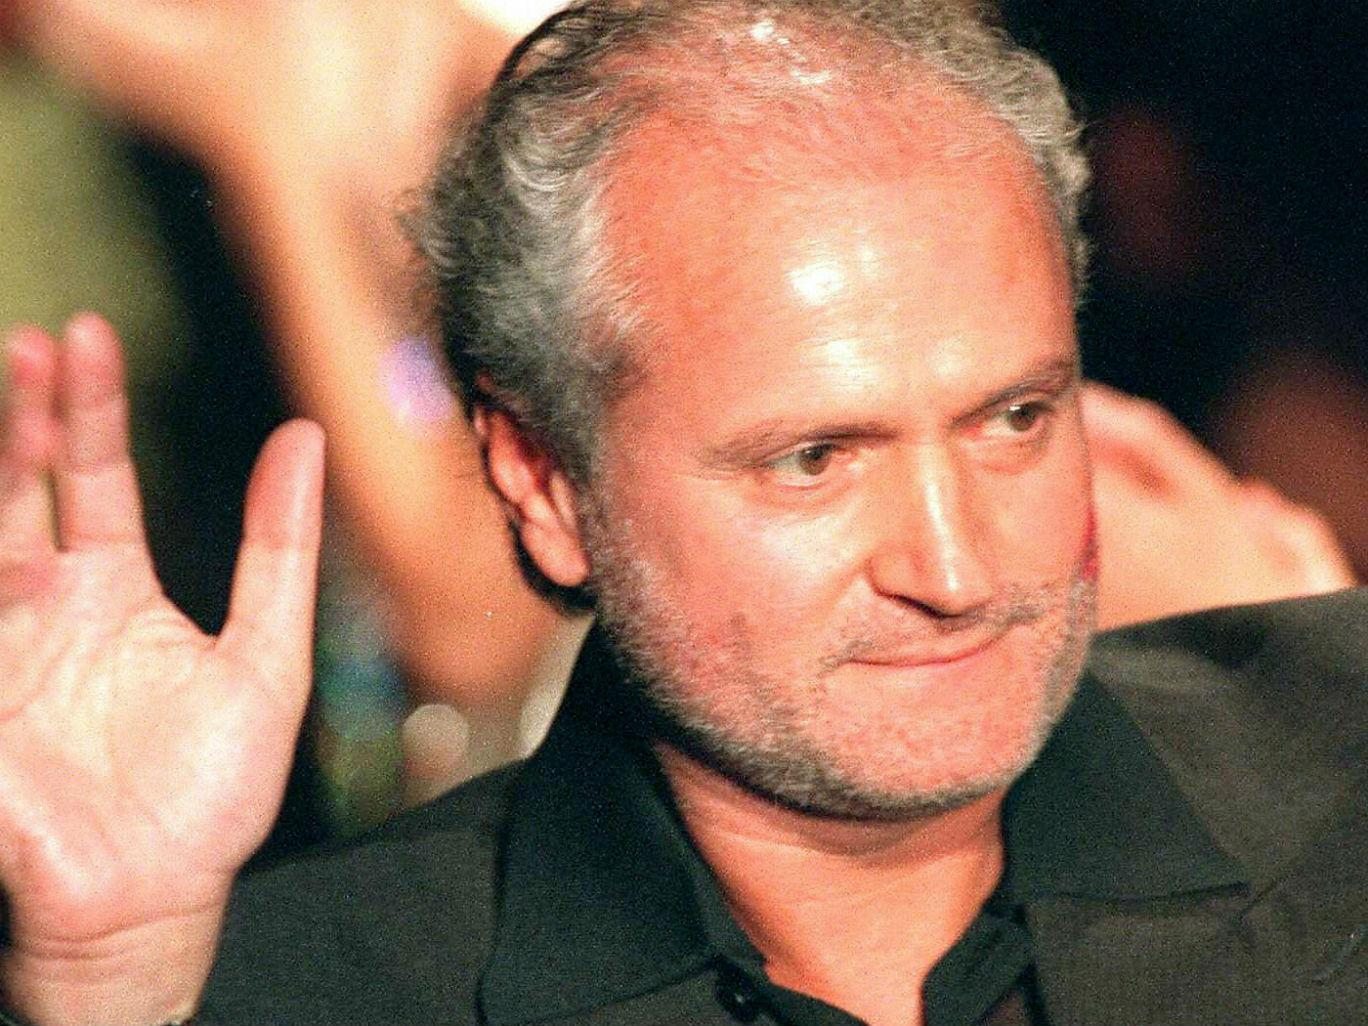 Gianni Versace  assassination   What is the truth behind the story of the  Italian fashion designer s murder   fcd20dd53d03f